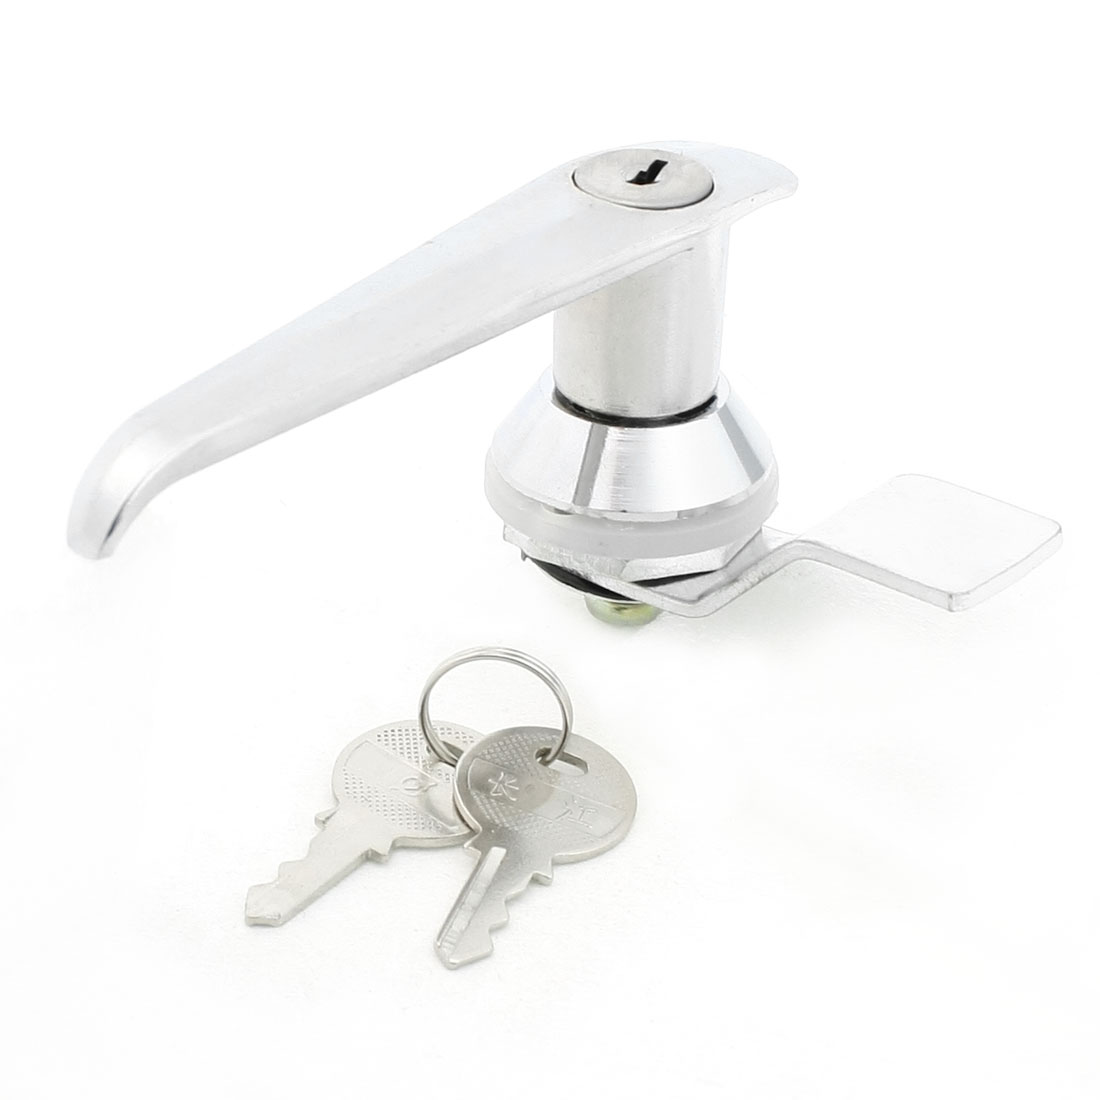 Door Cupboard Privacy Door Passage Lever Key Locking Lock w Keys